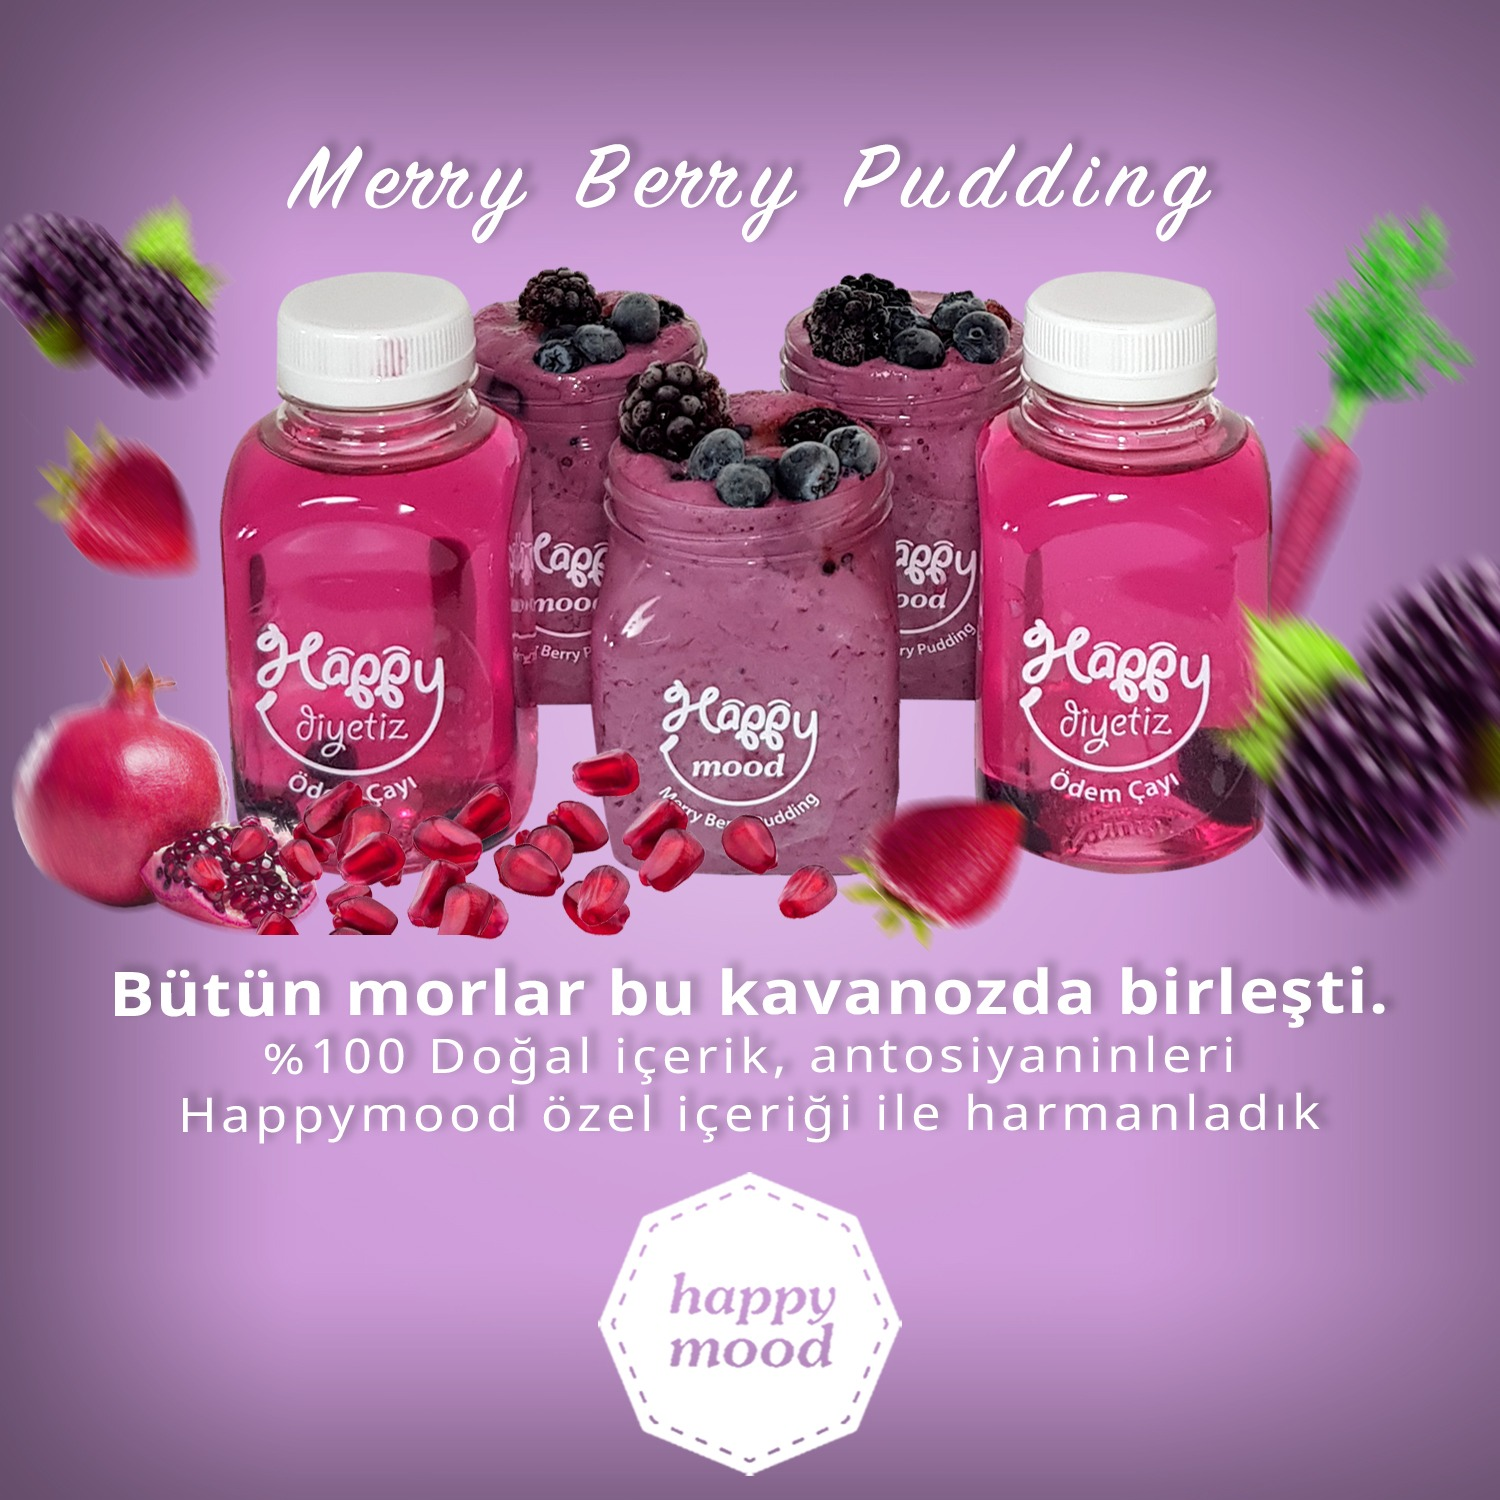 Merry Berry Pudding